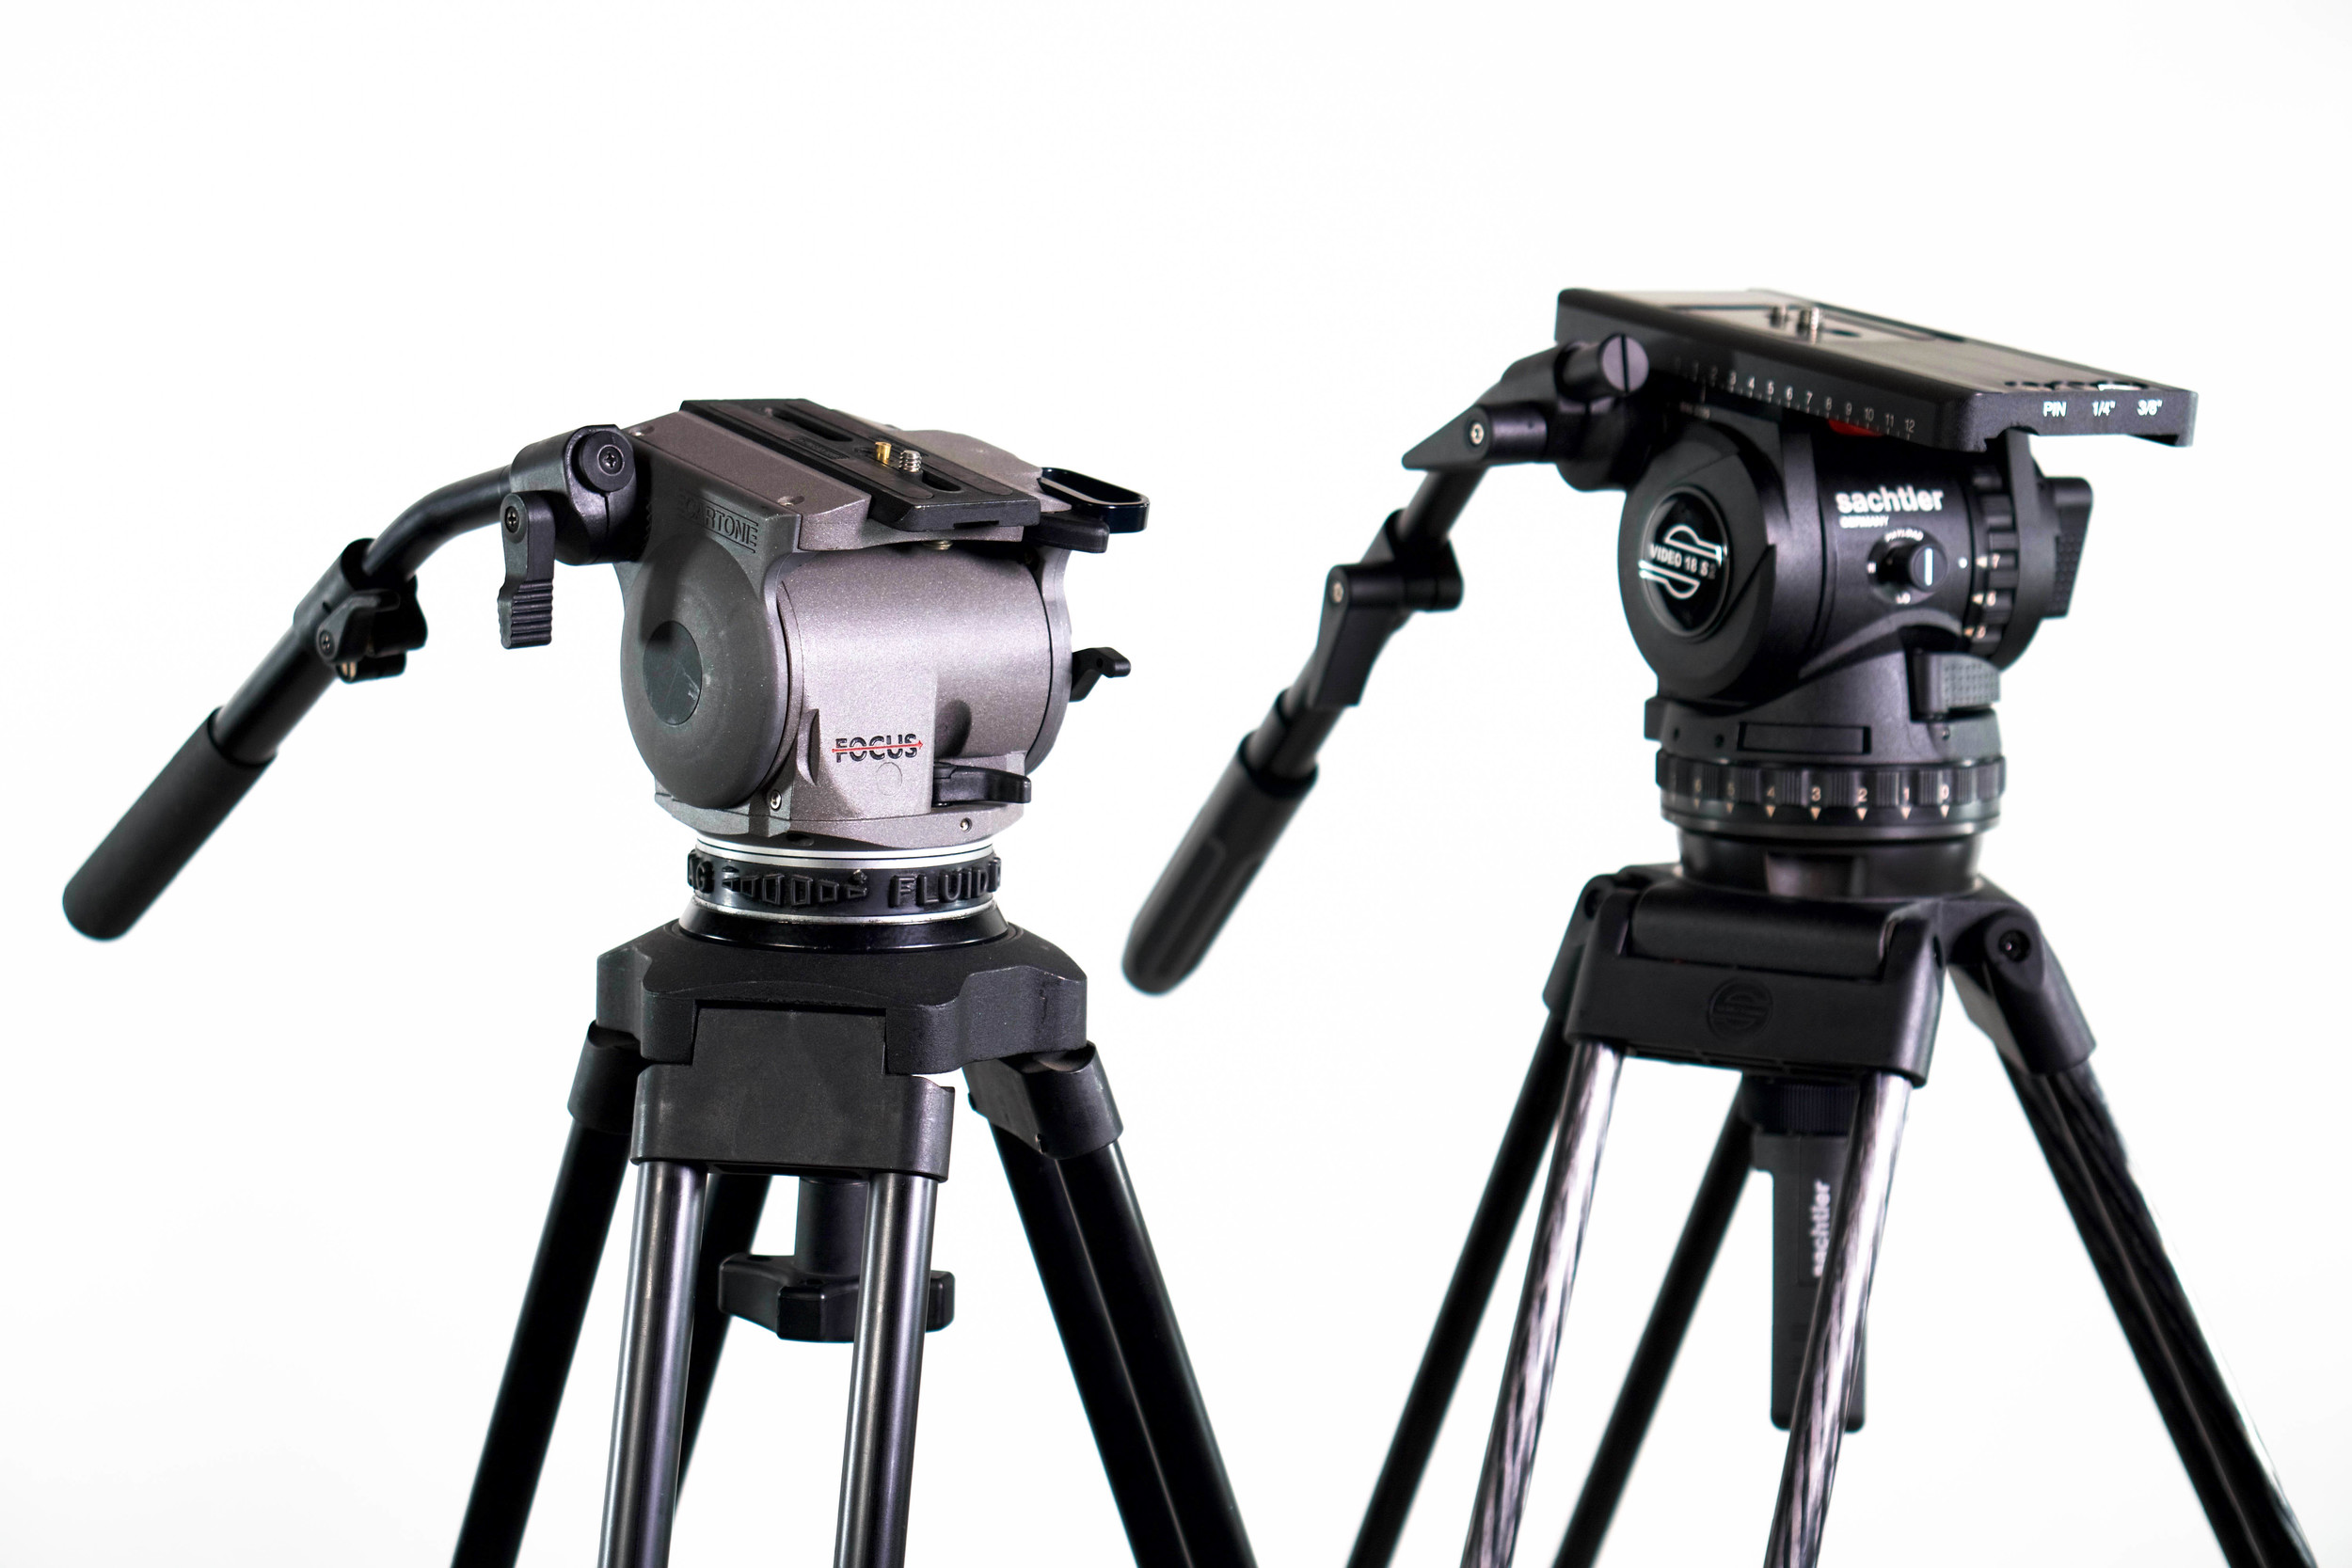 On the left, my Cartoni Focus; on the right, the Sachtler Video 18 S2. Both are great for their intended purpose, but the Sachtler aims higher.